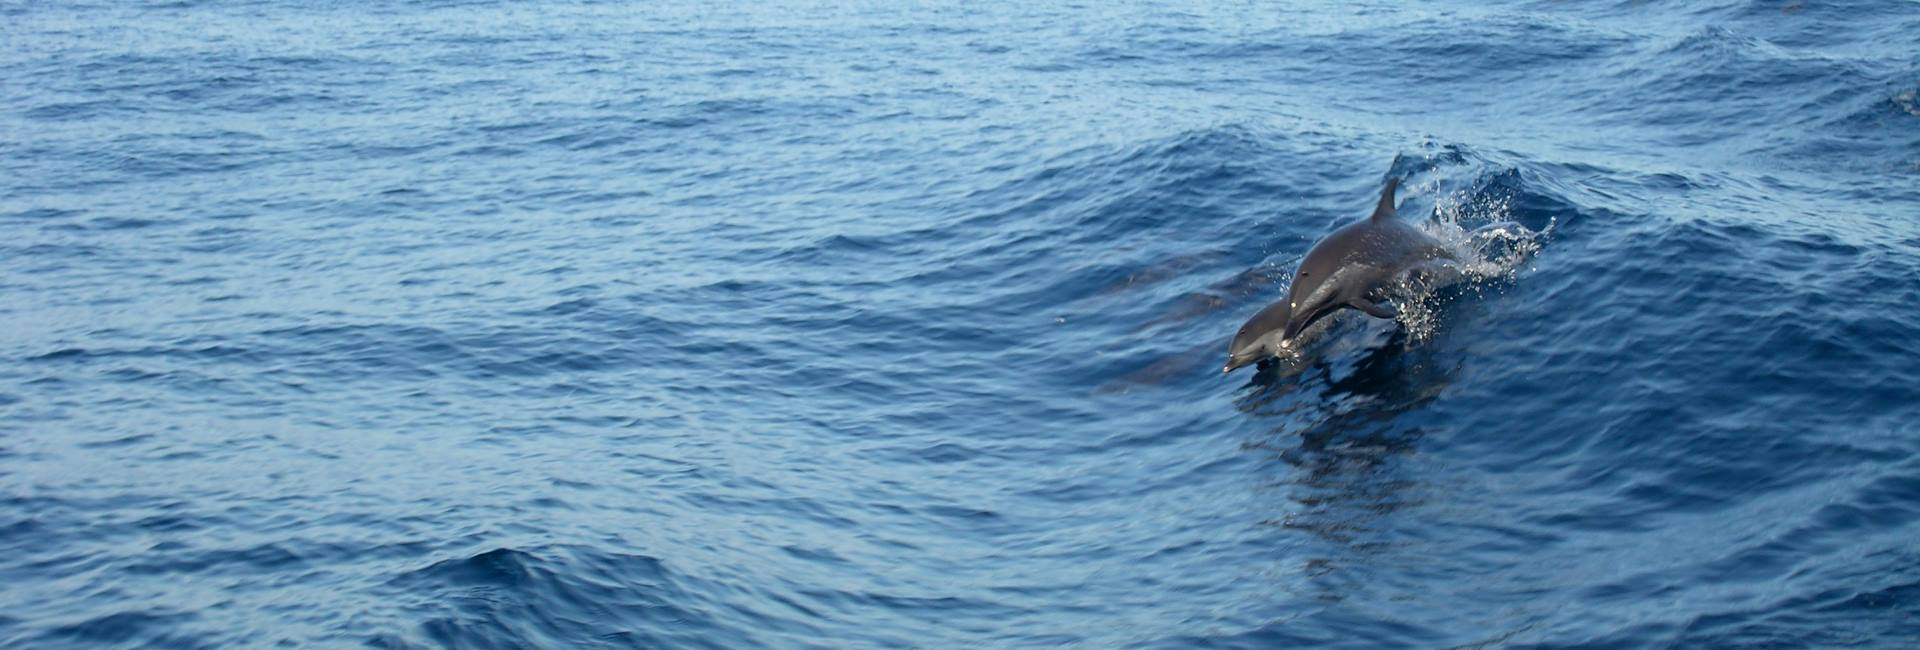 Mother and baby dolphin swimming next to the boat